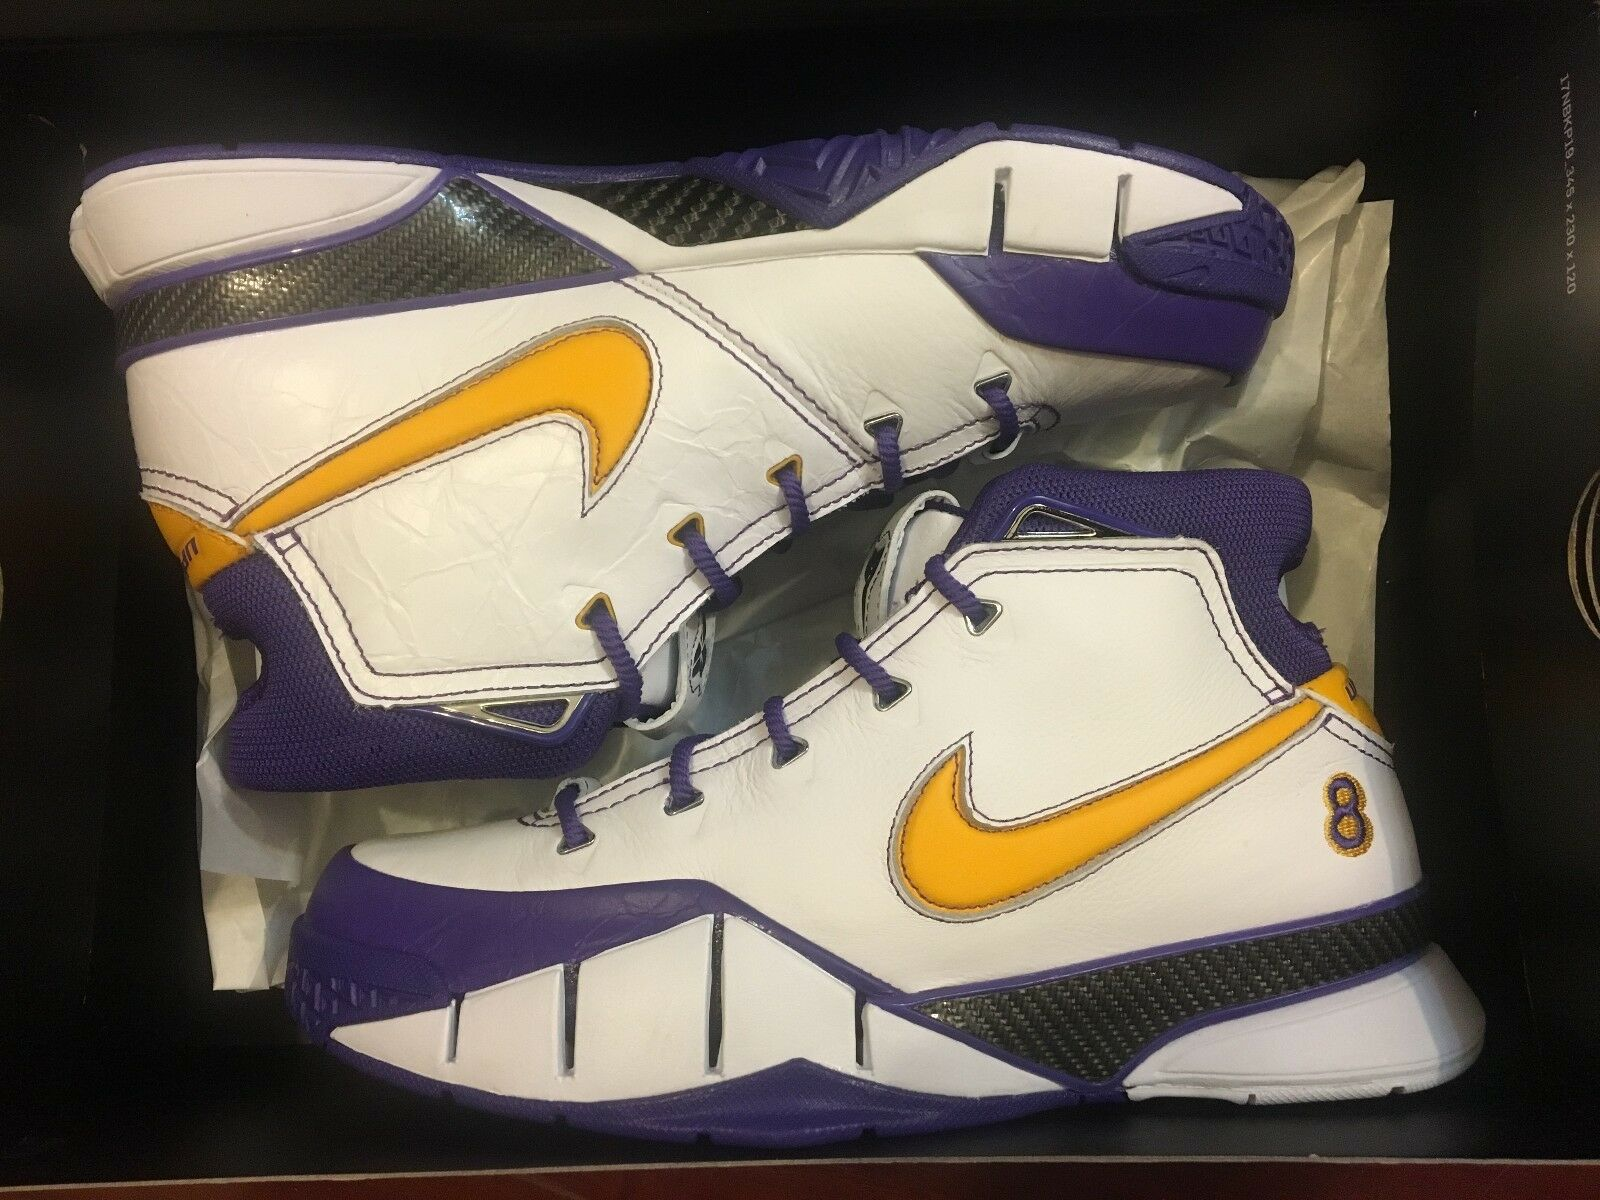 NEW NIKE KOBE 1 PROTRO CLOSE OUT FINAL SECONDS WHITE SHOES AQ2728-101 MEN SIZE 8